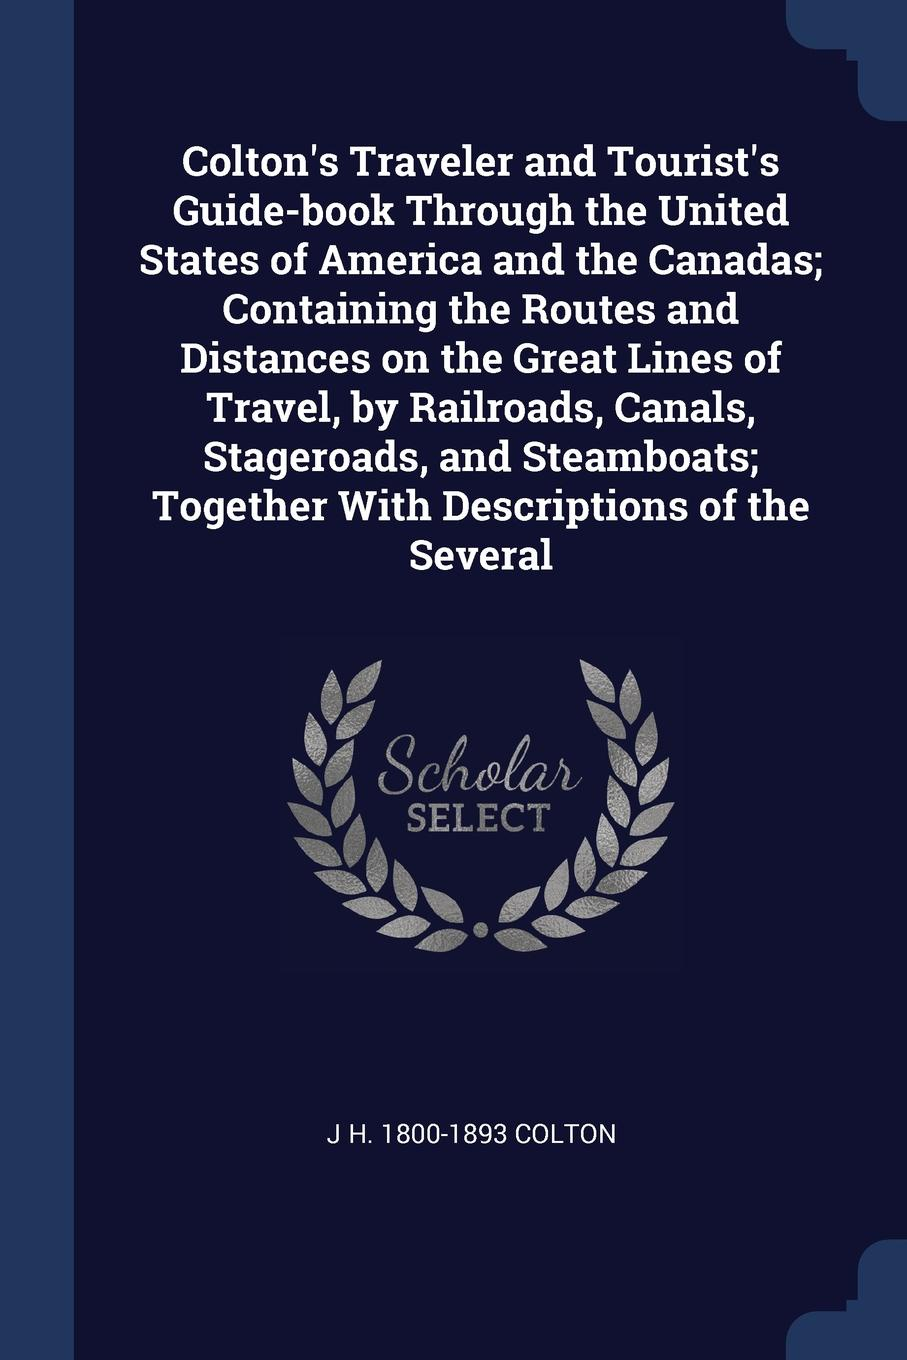 Colton's Traveler and Tourist's Guide-book Through the United States of America and the Canadas; Containing the Routes and Distances on the Great Lines of Travel, by Railroads, Canals, Stageroads, and Steamboats; Together With Descriptions of the ...